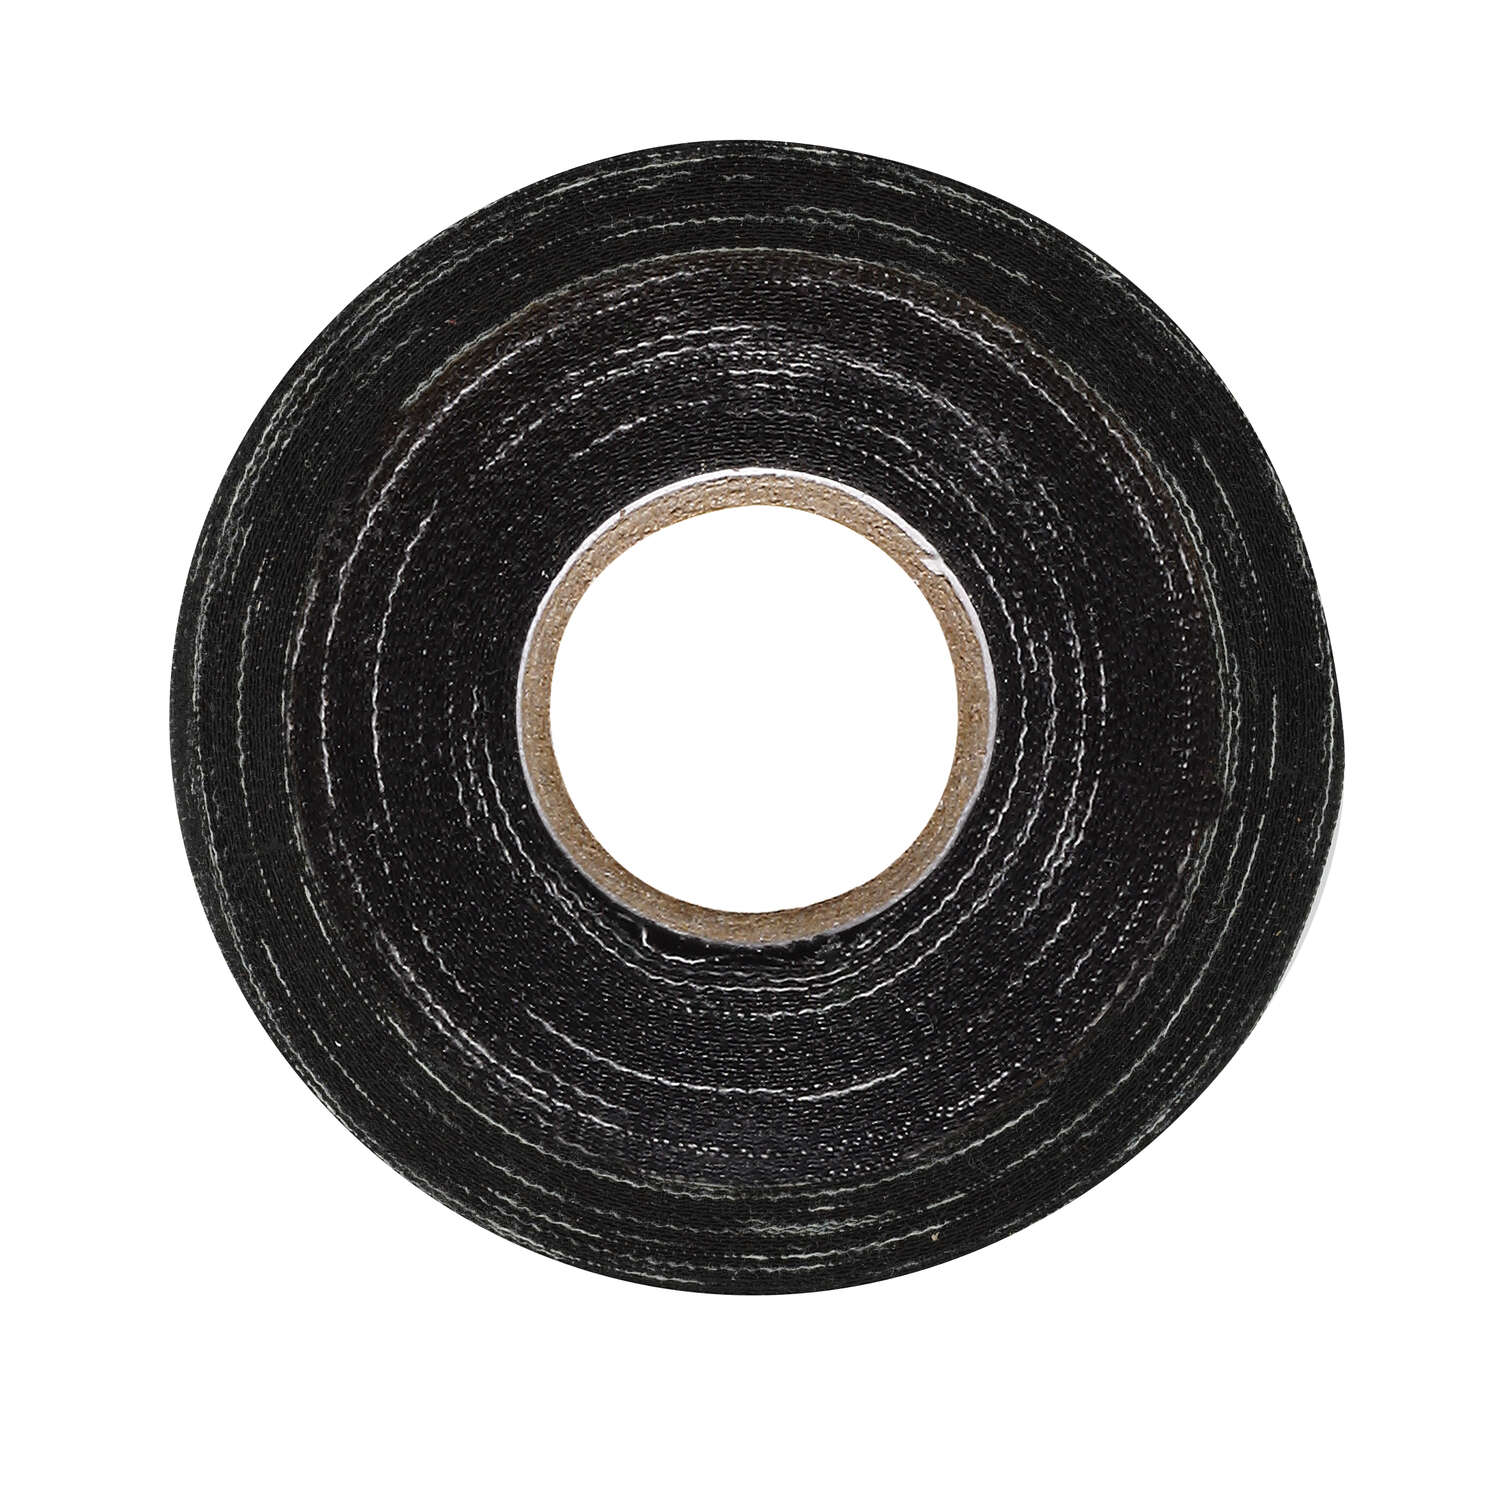 3M  Temflex  1-1/2 in. W x 60 ft. L Black  Cotton Cloth  Friction Tape